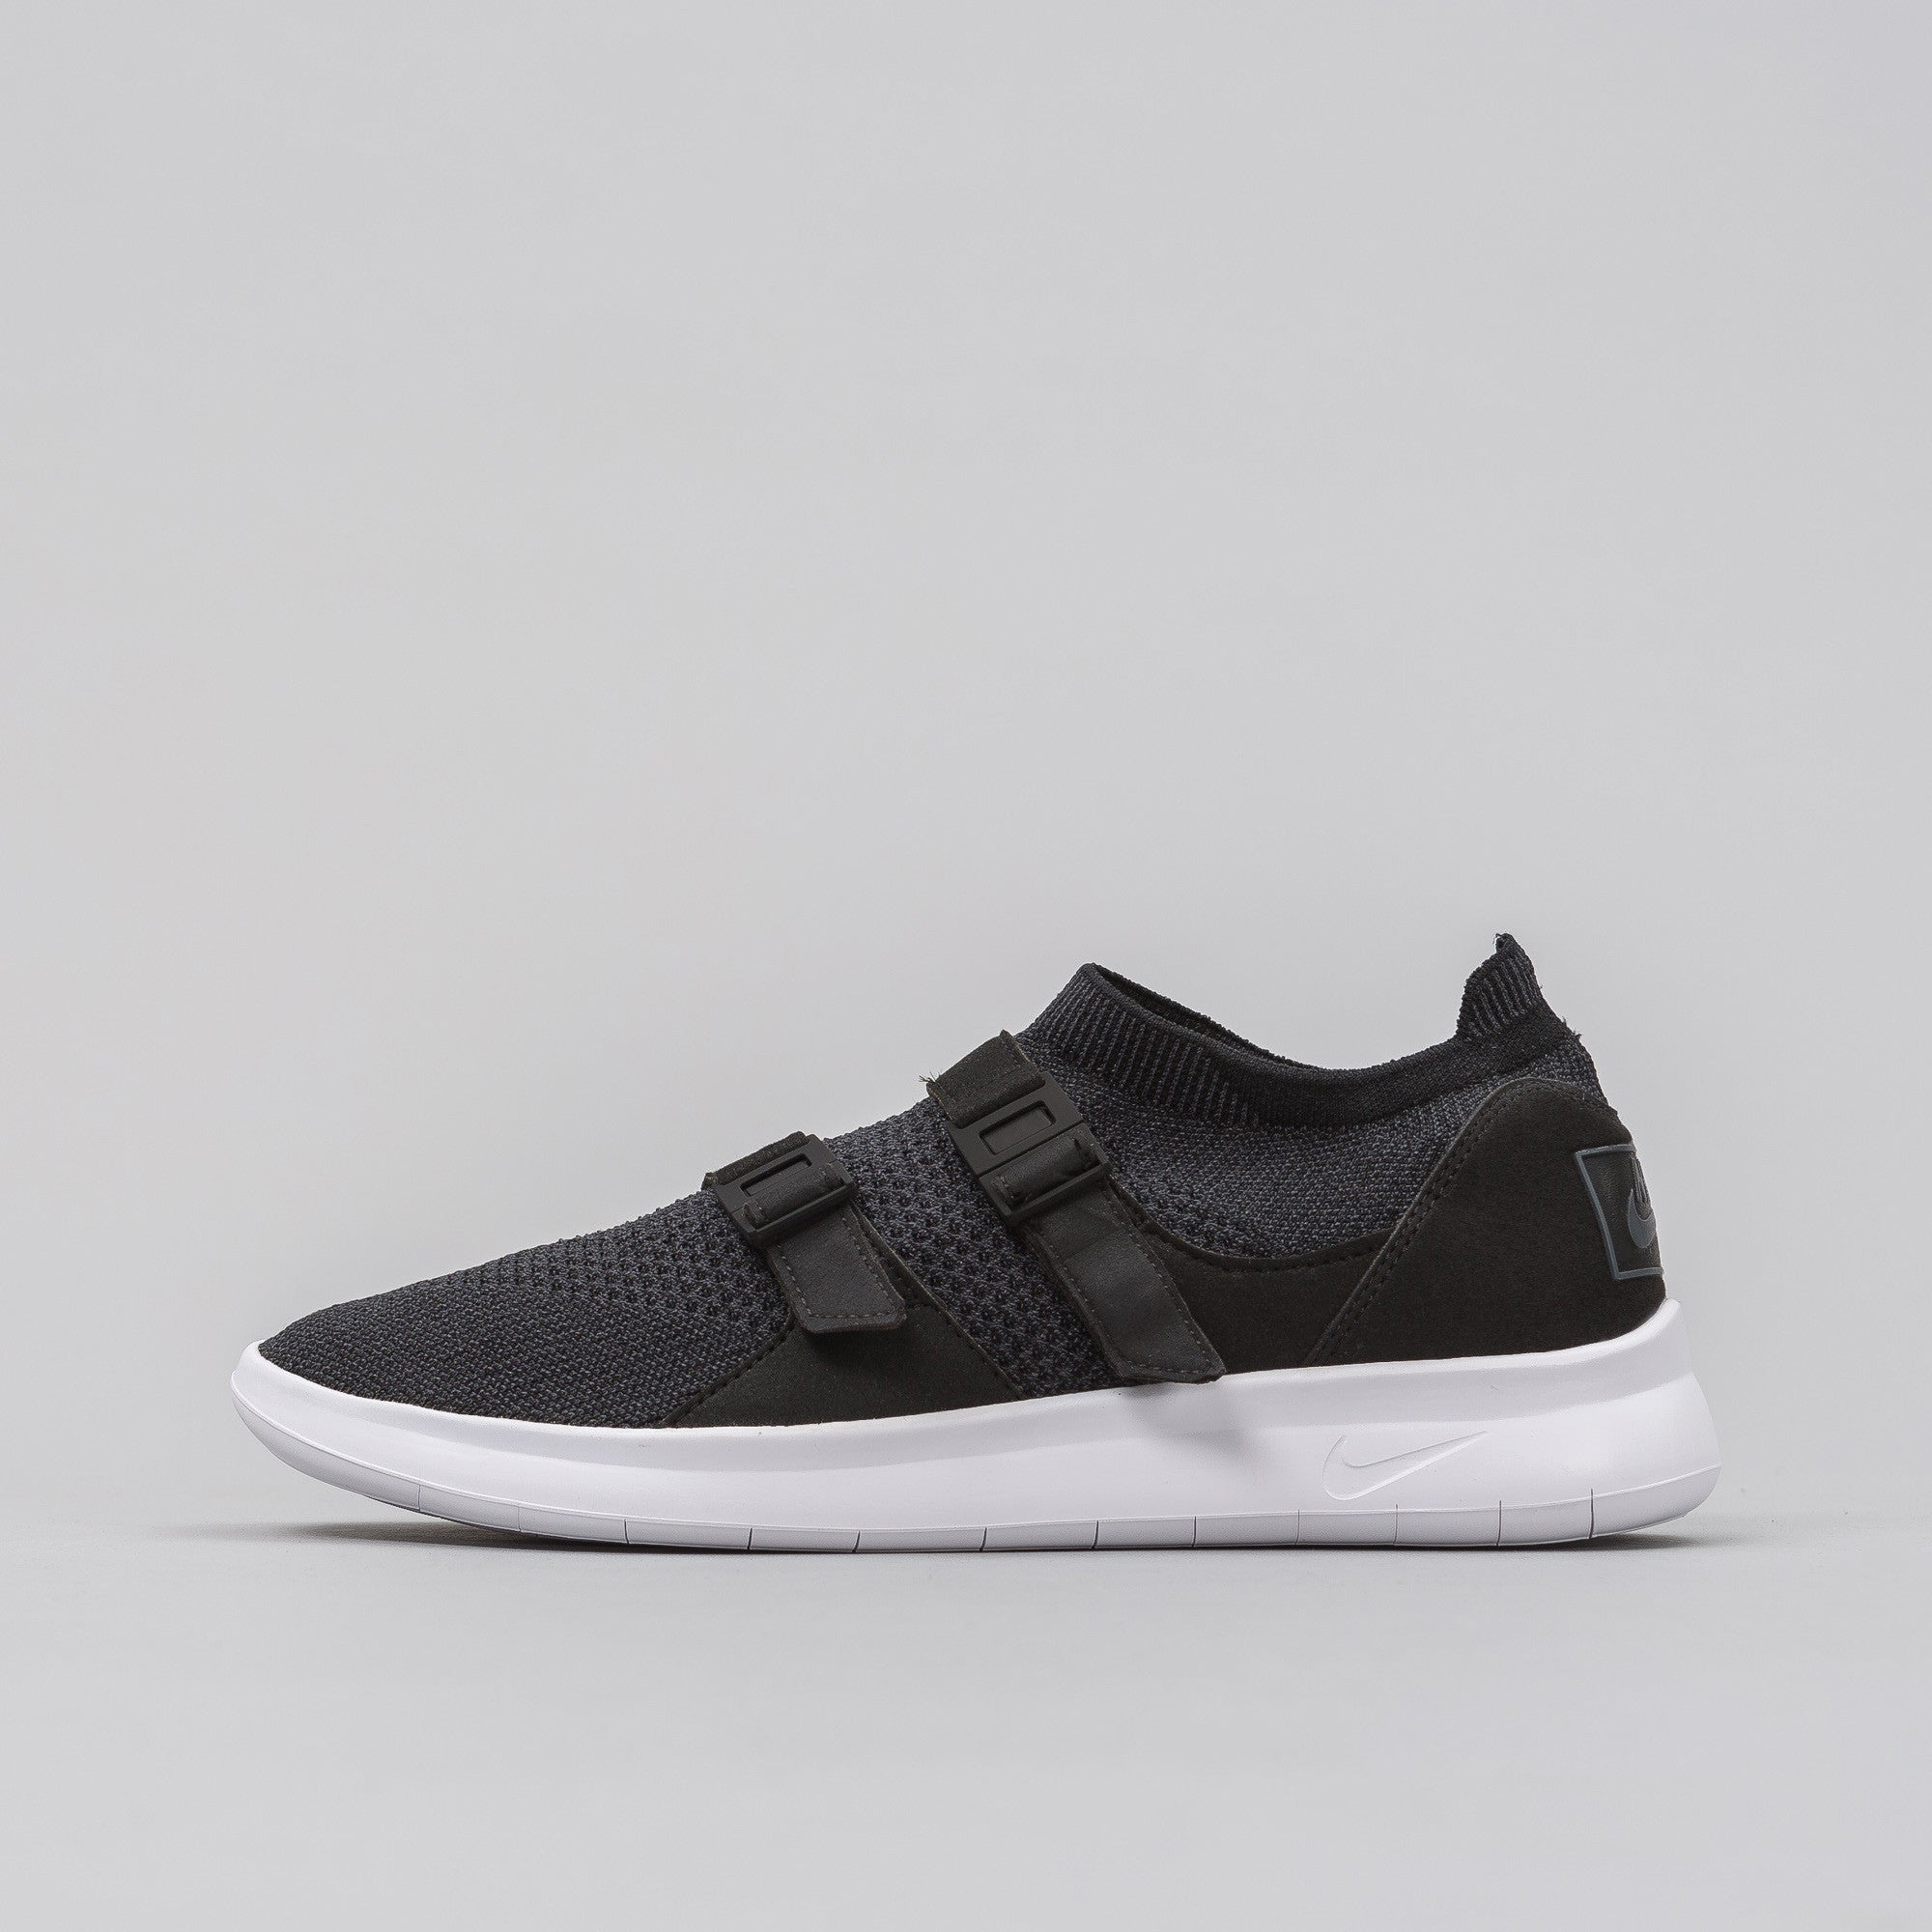 Air Sockracer Ultra Flyknit in Black/Anthracite/White